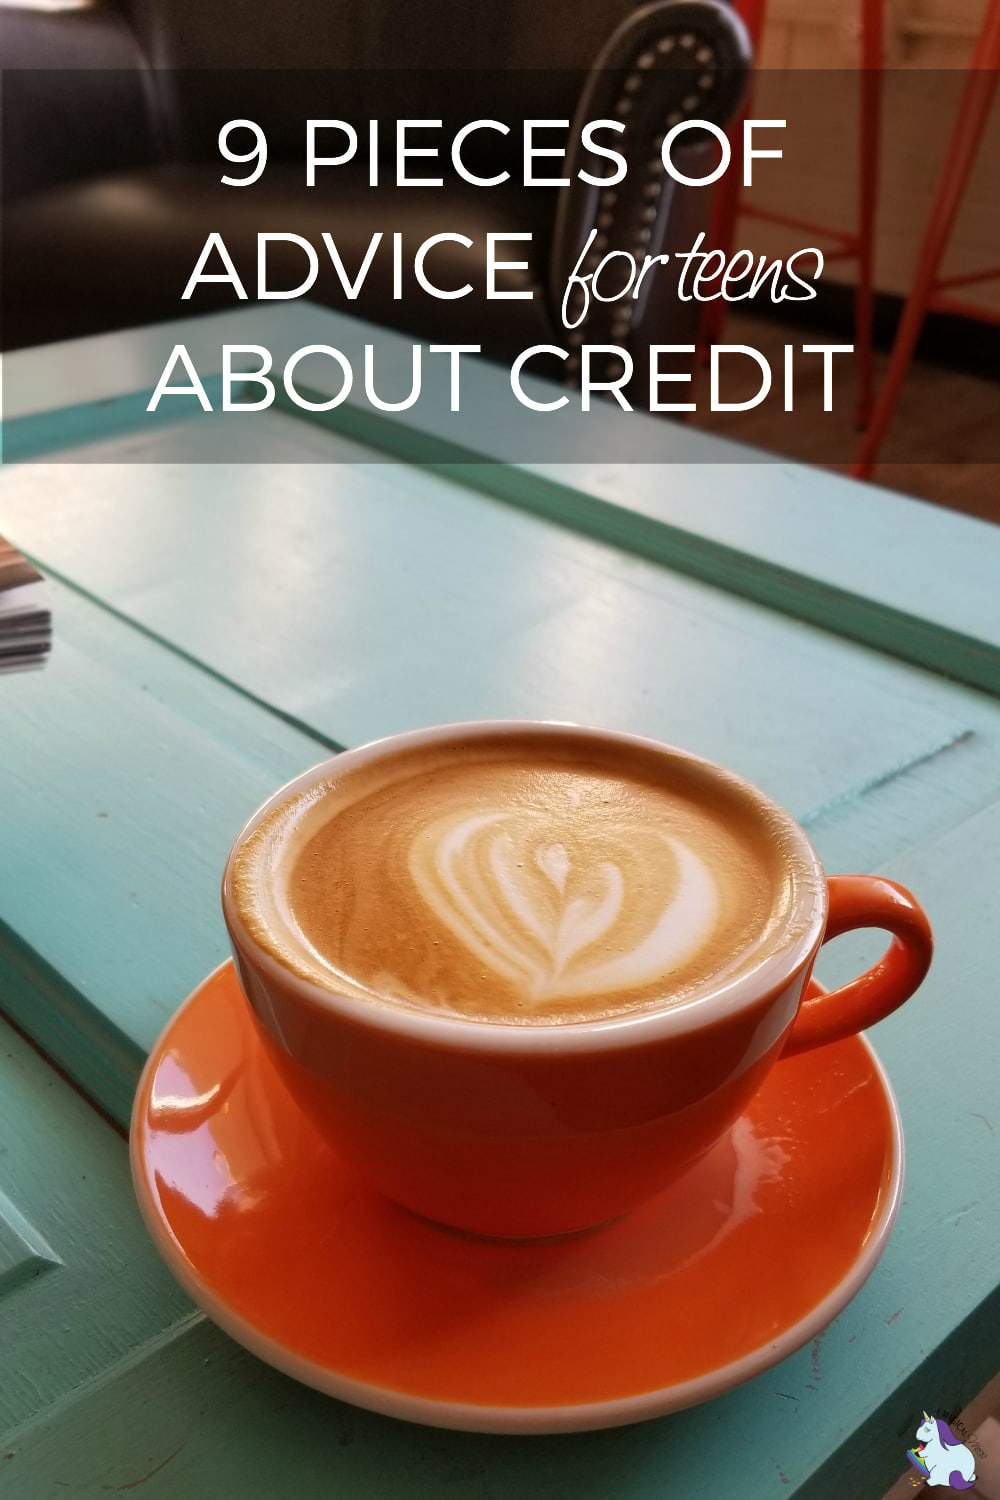 Check out these 9 excellent pieces of advice to give teens in high school about credit before they go to college. #Parenting #Teens #finances #credit #money